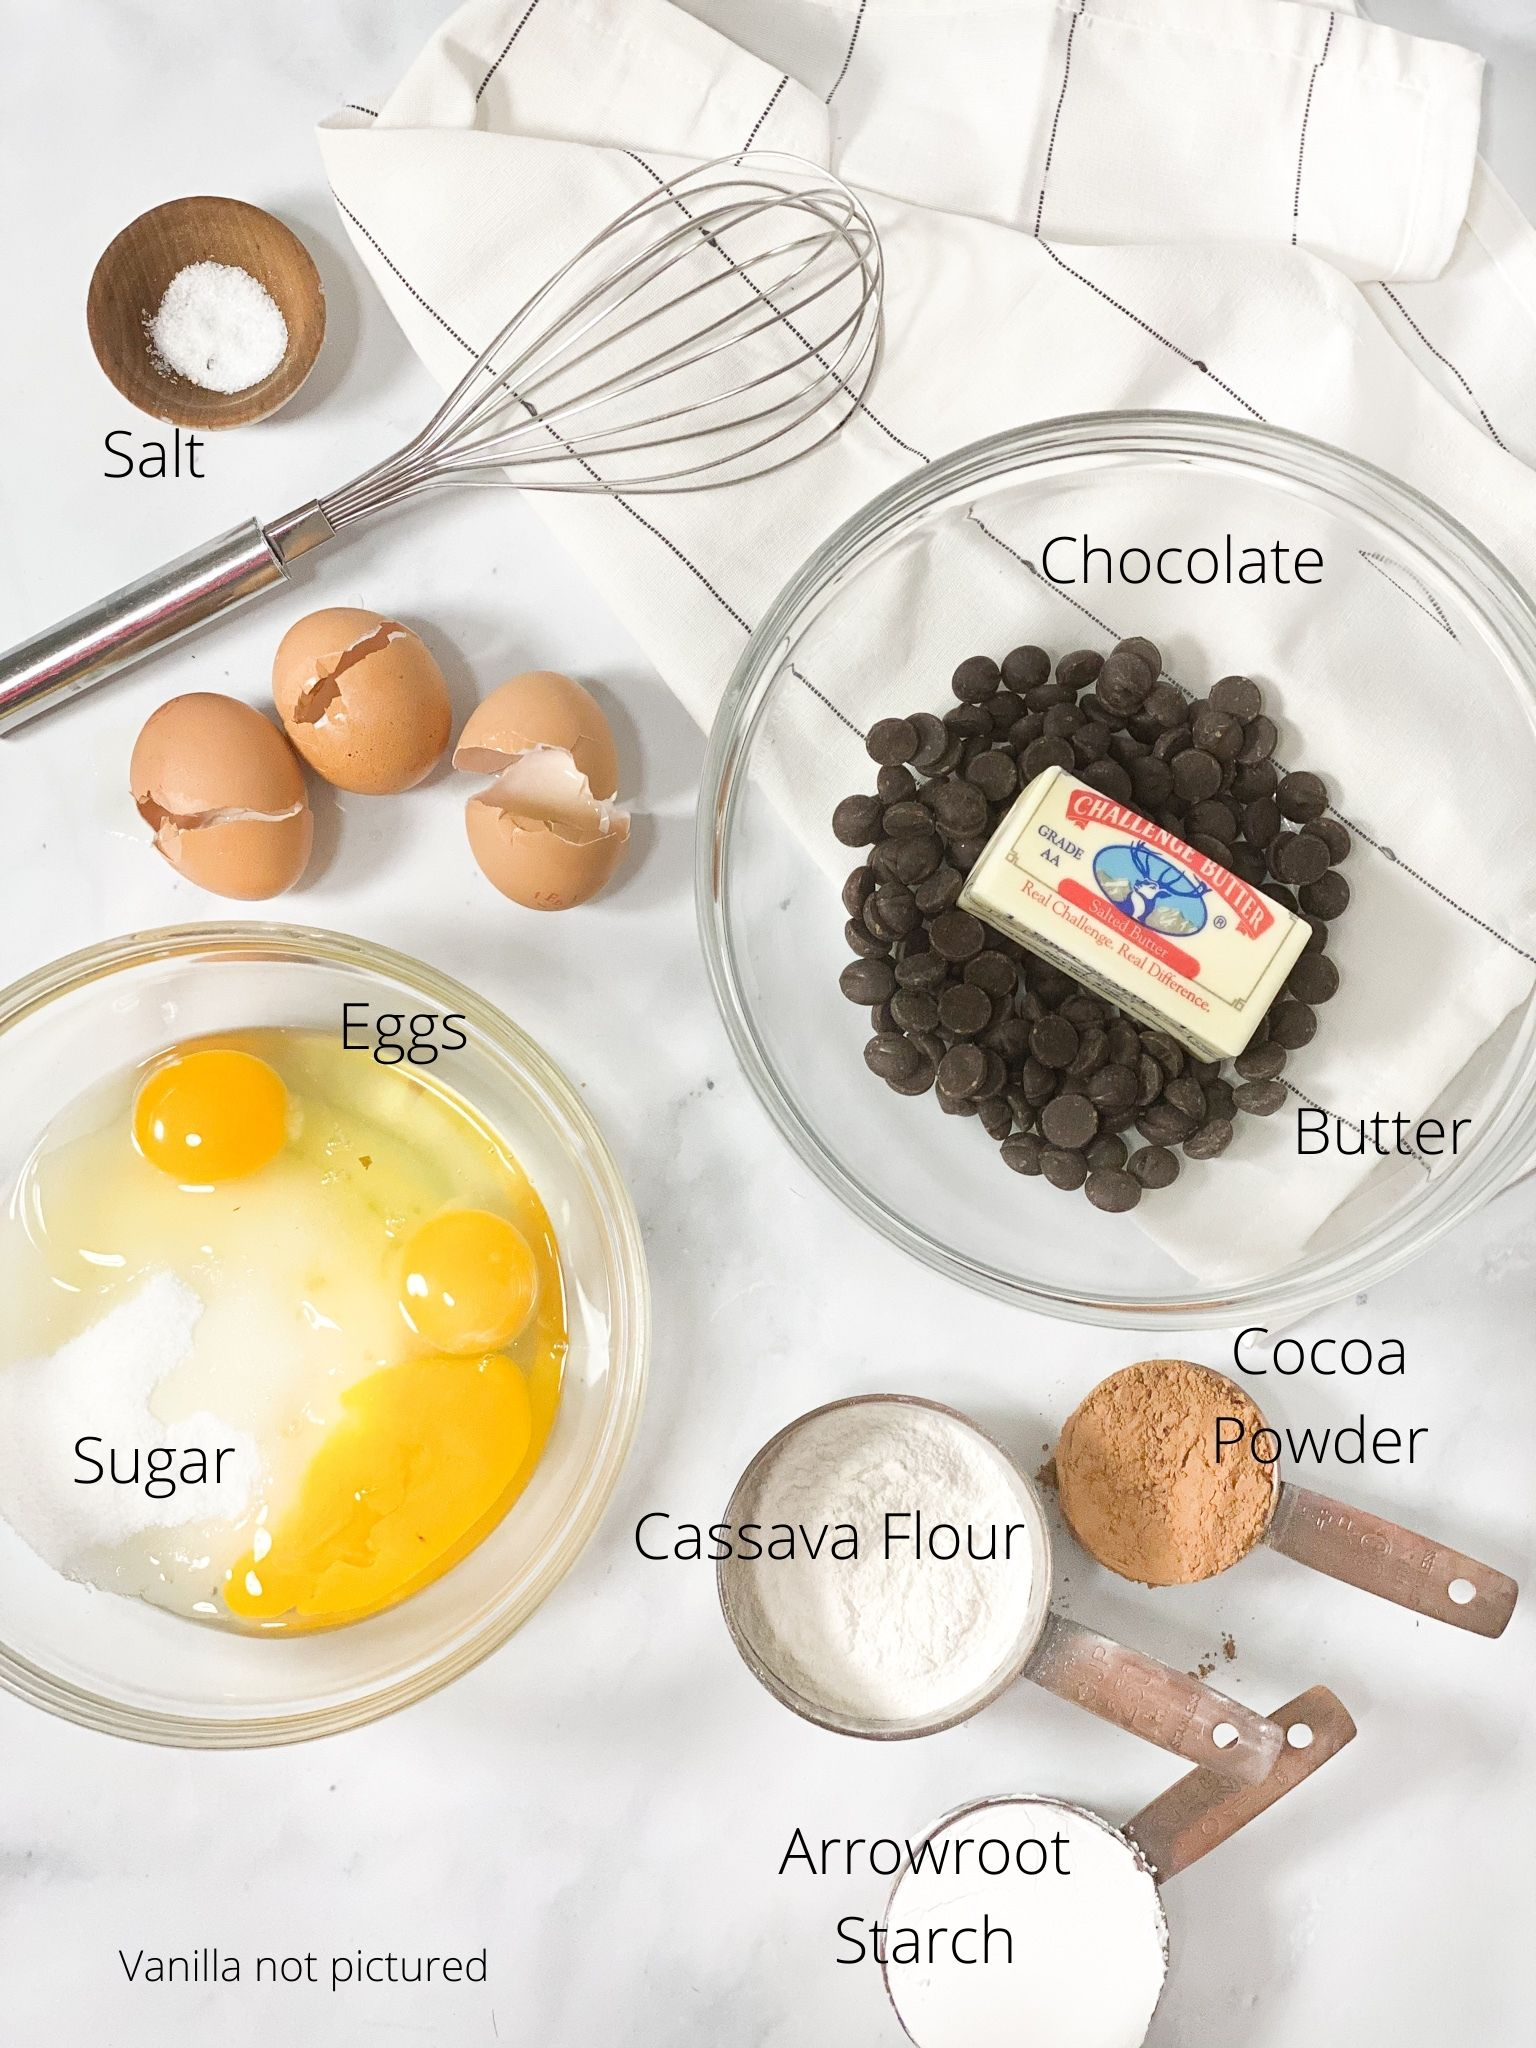 Ingredients in chewy fudge brownies. Salt in a small wooden bowl. Three cracked eggs with the sugar in a small bowl. Chocolate chips and butter in a separate bowl ready to be melted. Cocoa powder, cassava flour and arrowroot starch in copper measuring cups on the side and a whisk ready to mix it all together.